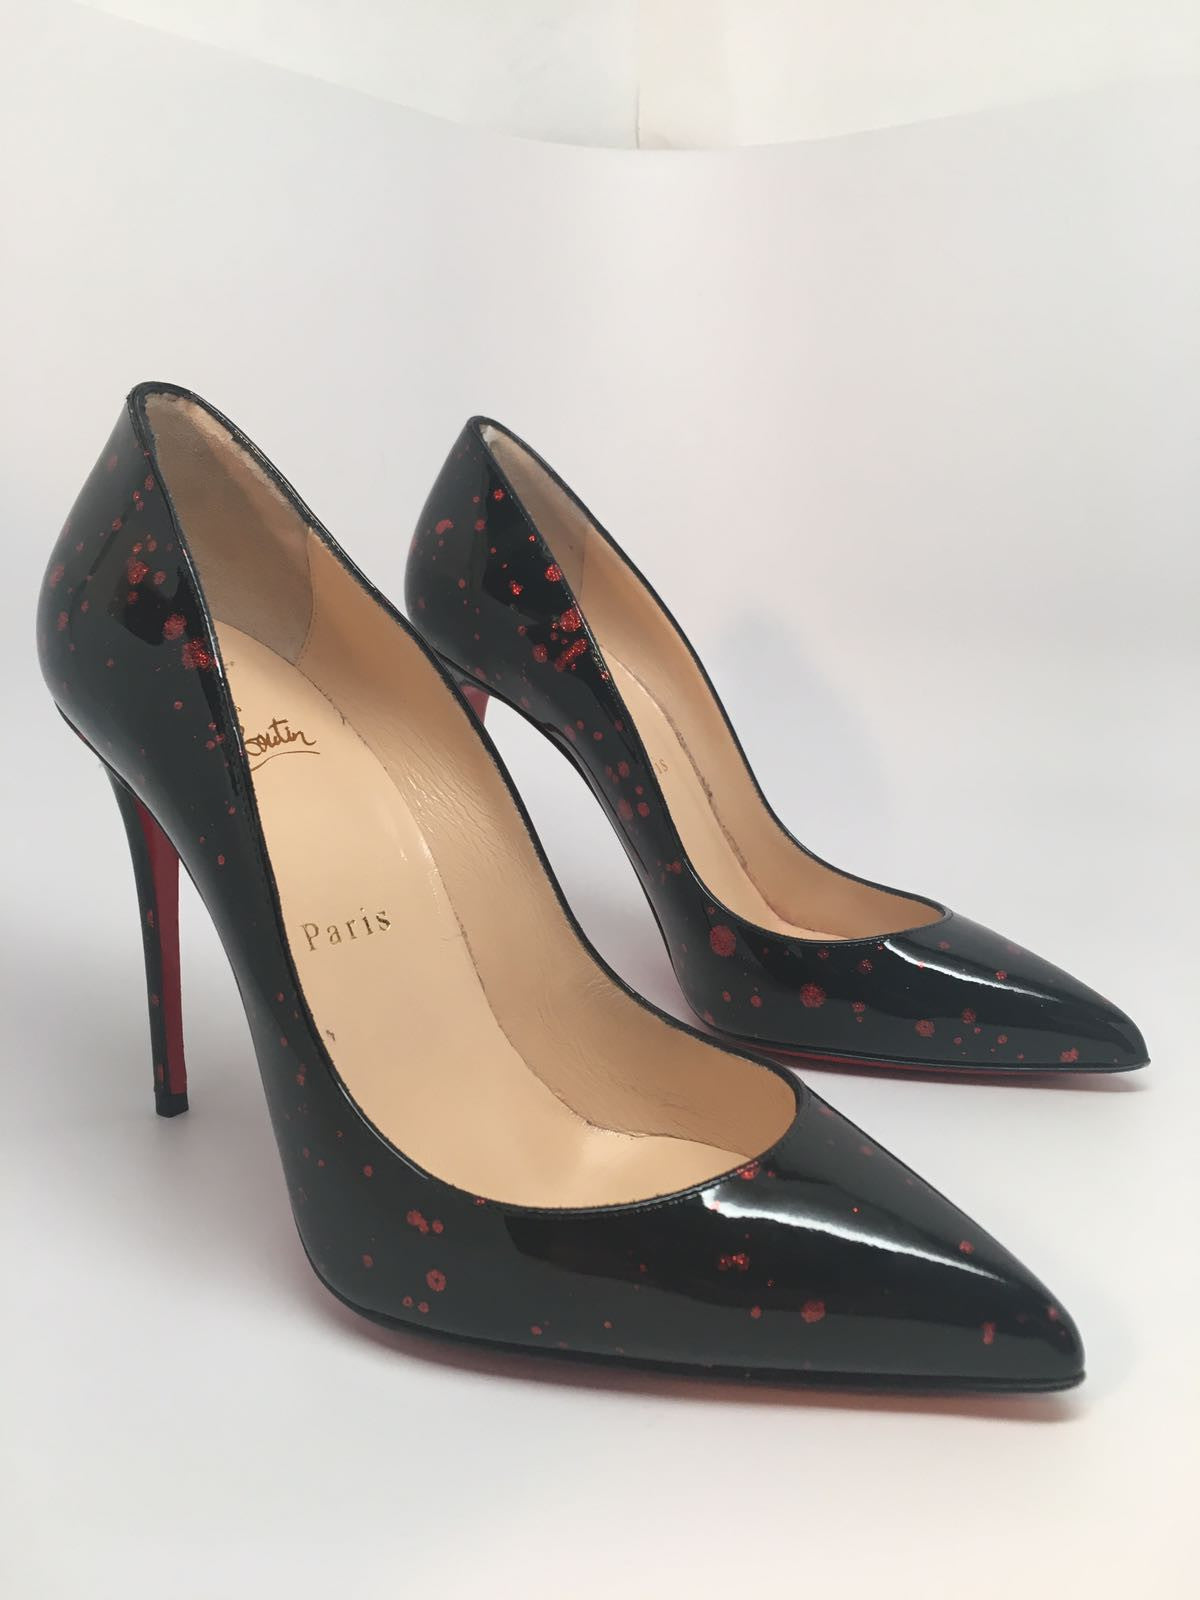 11d12db3388 CHRISTIAN LOUBOUTIN PIGALLE FOLLIES 100 PATENT POLLOCK - SIZE 37.5 –  Hebster Boutique